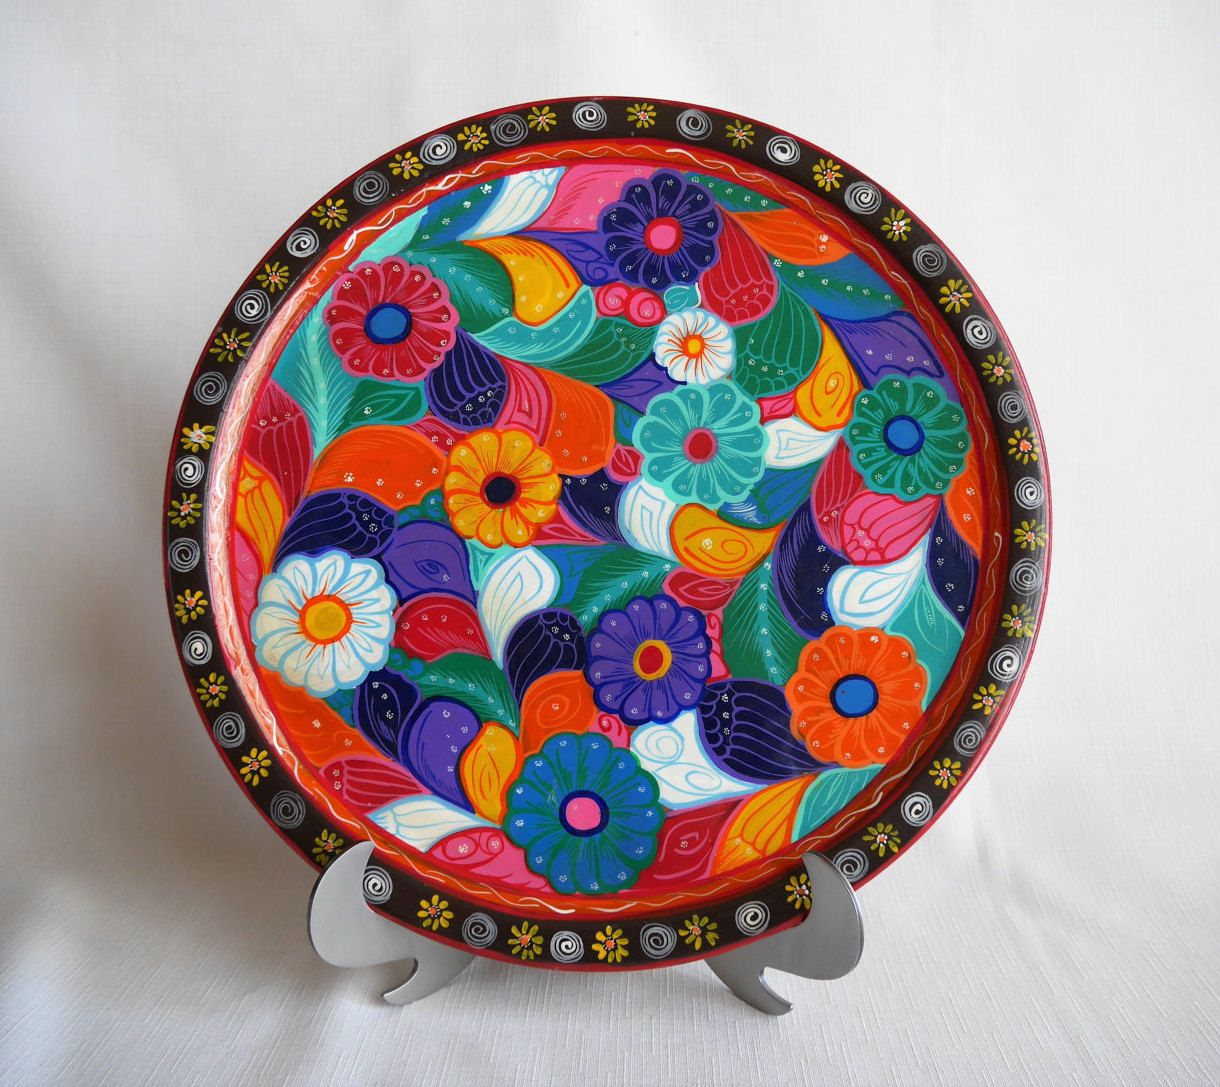 Recent Festive Wooden Mexican Floral Batea Platter, Plate, Tray, Multi Intended For Multi Plates Wall Decor (Gallery 10 of 20)